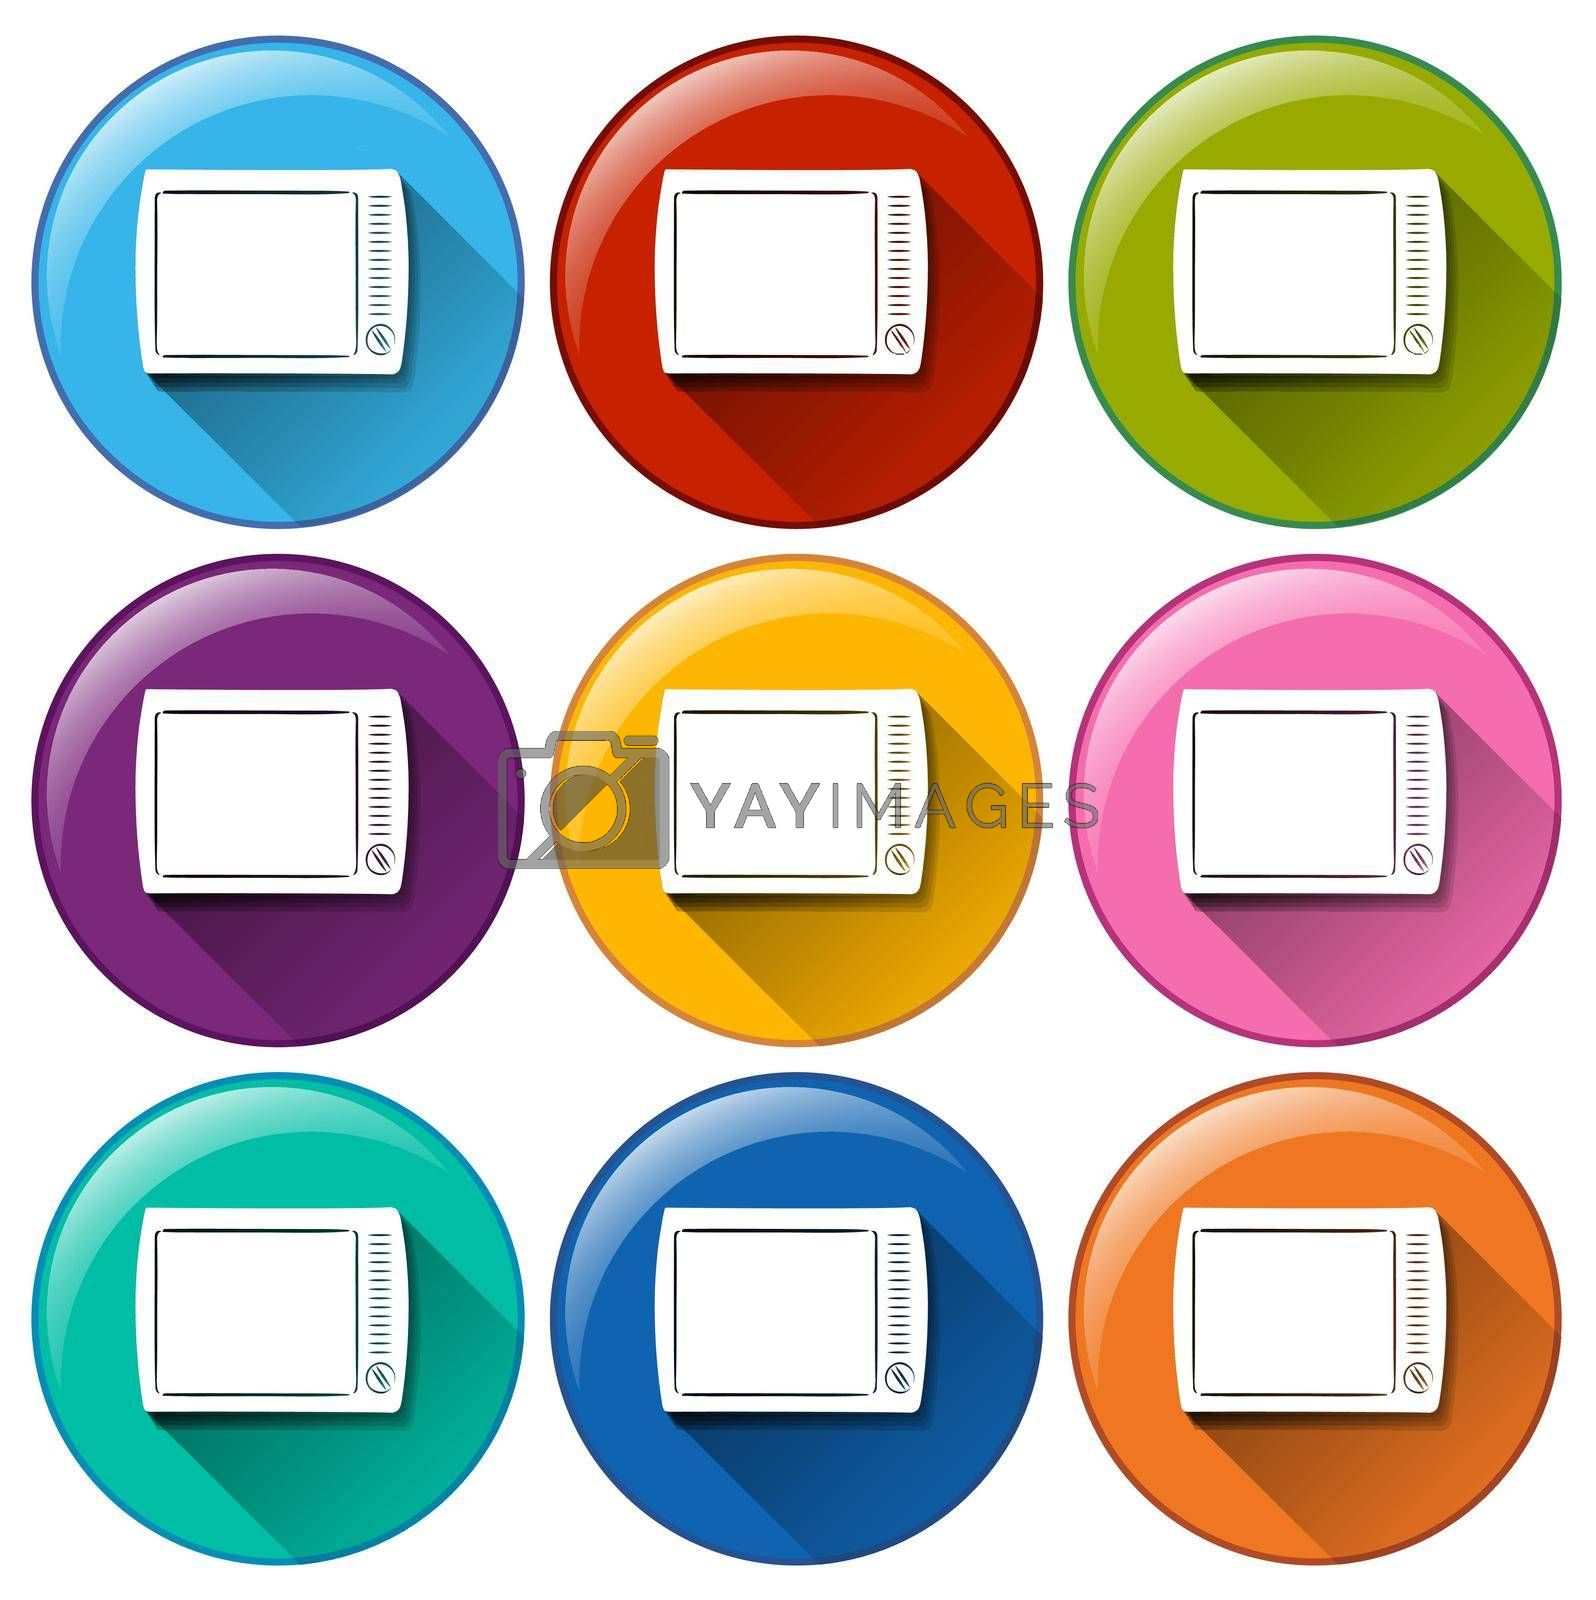 Royalty free image of Technology icons by iimages